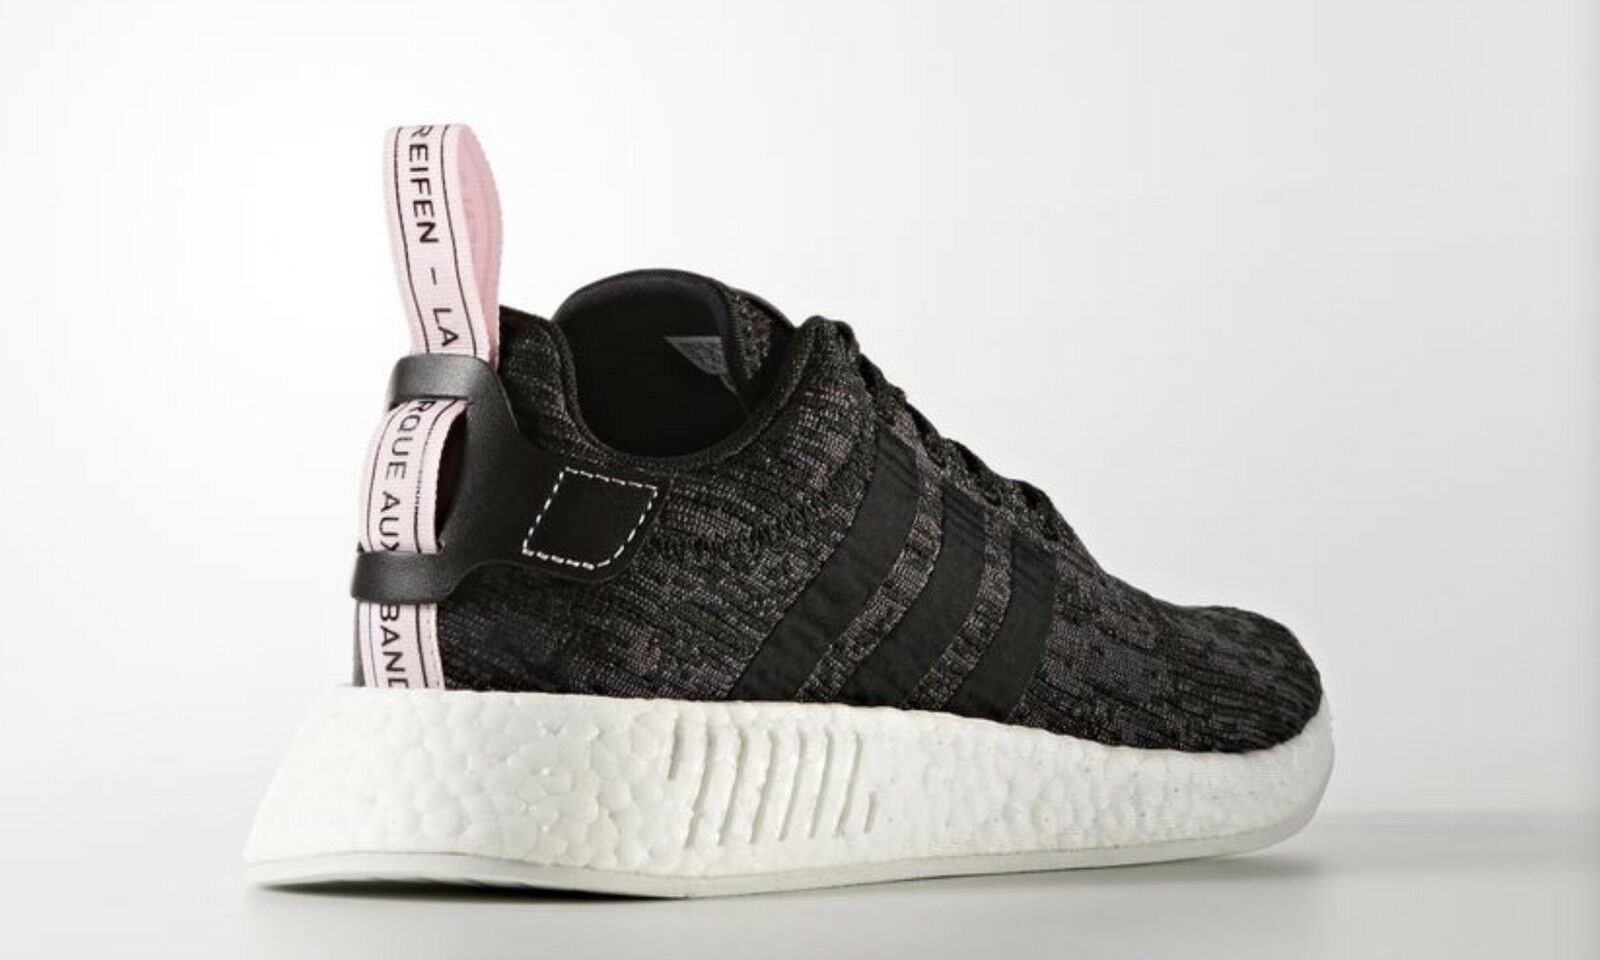 NEW Adidas Adidas Adidas Originals BY9314 WOMEN'S NMD R2 BOOST SHOES Black Pink US9 a5ceee